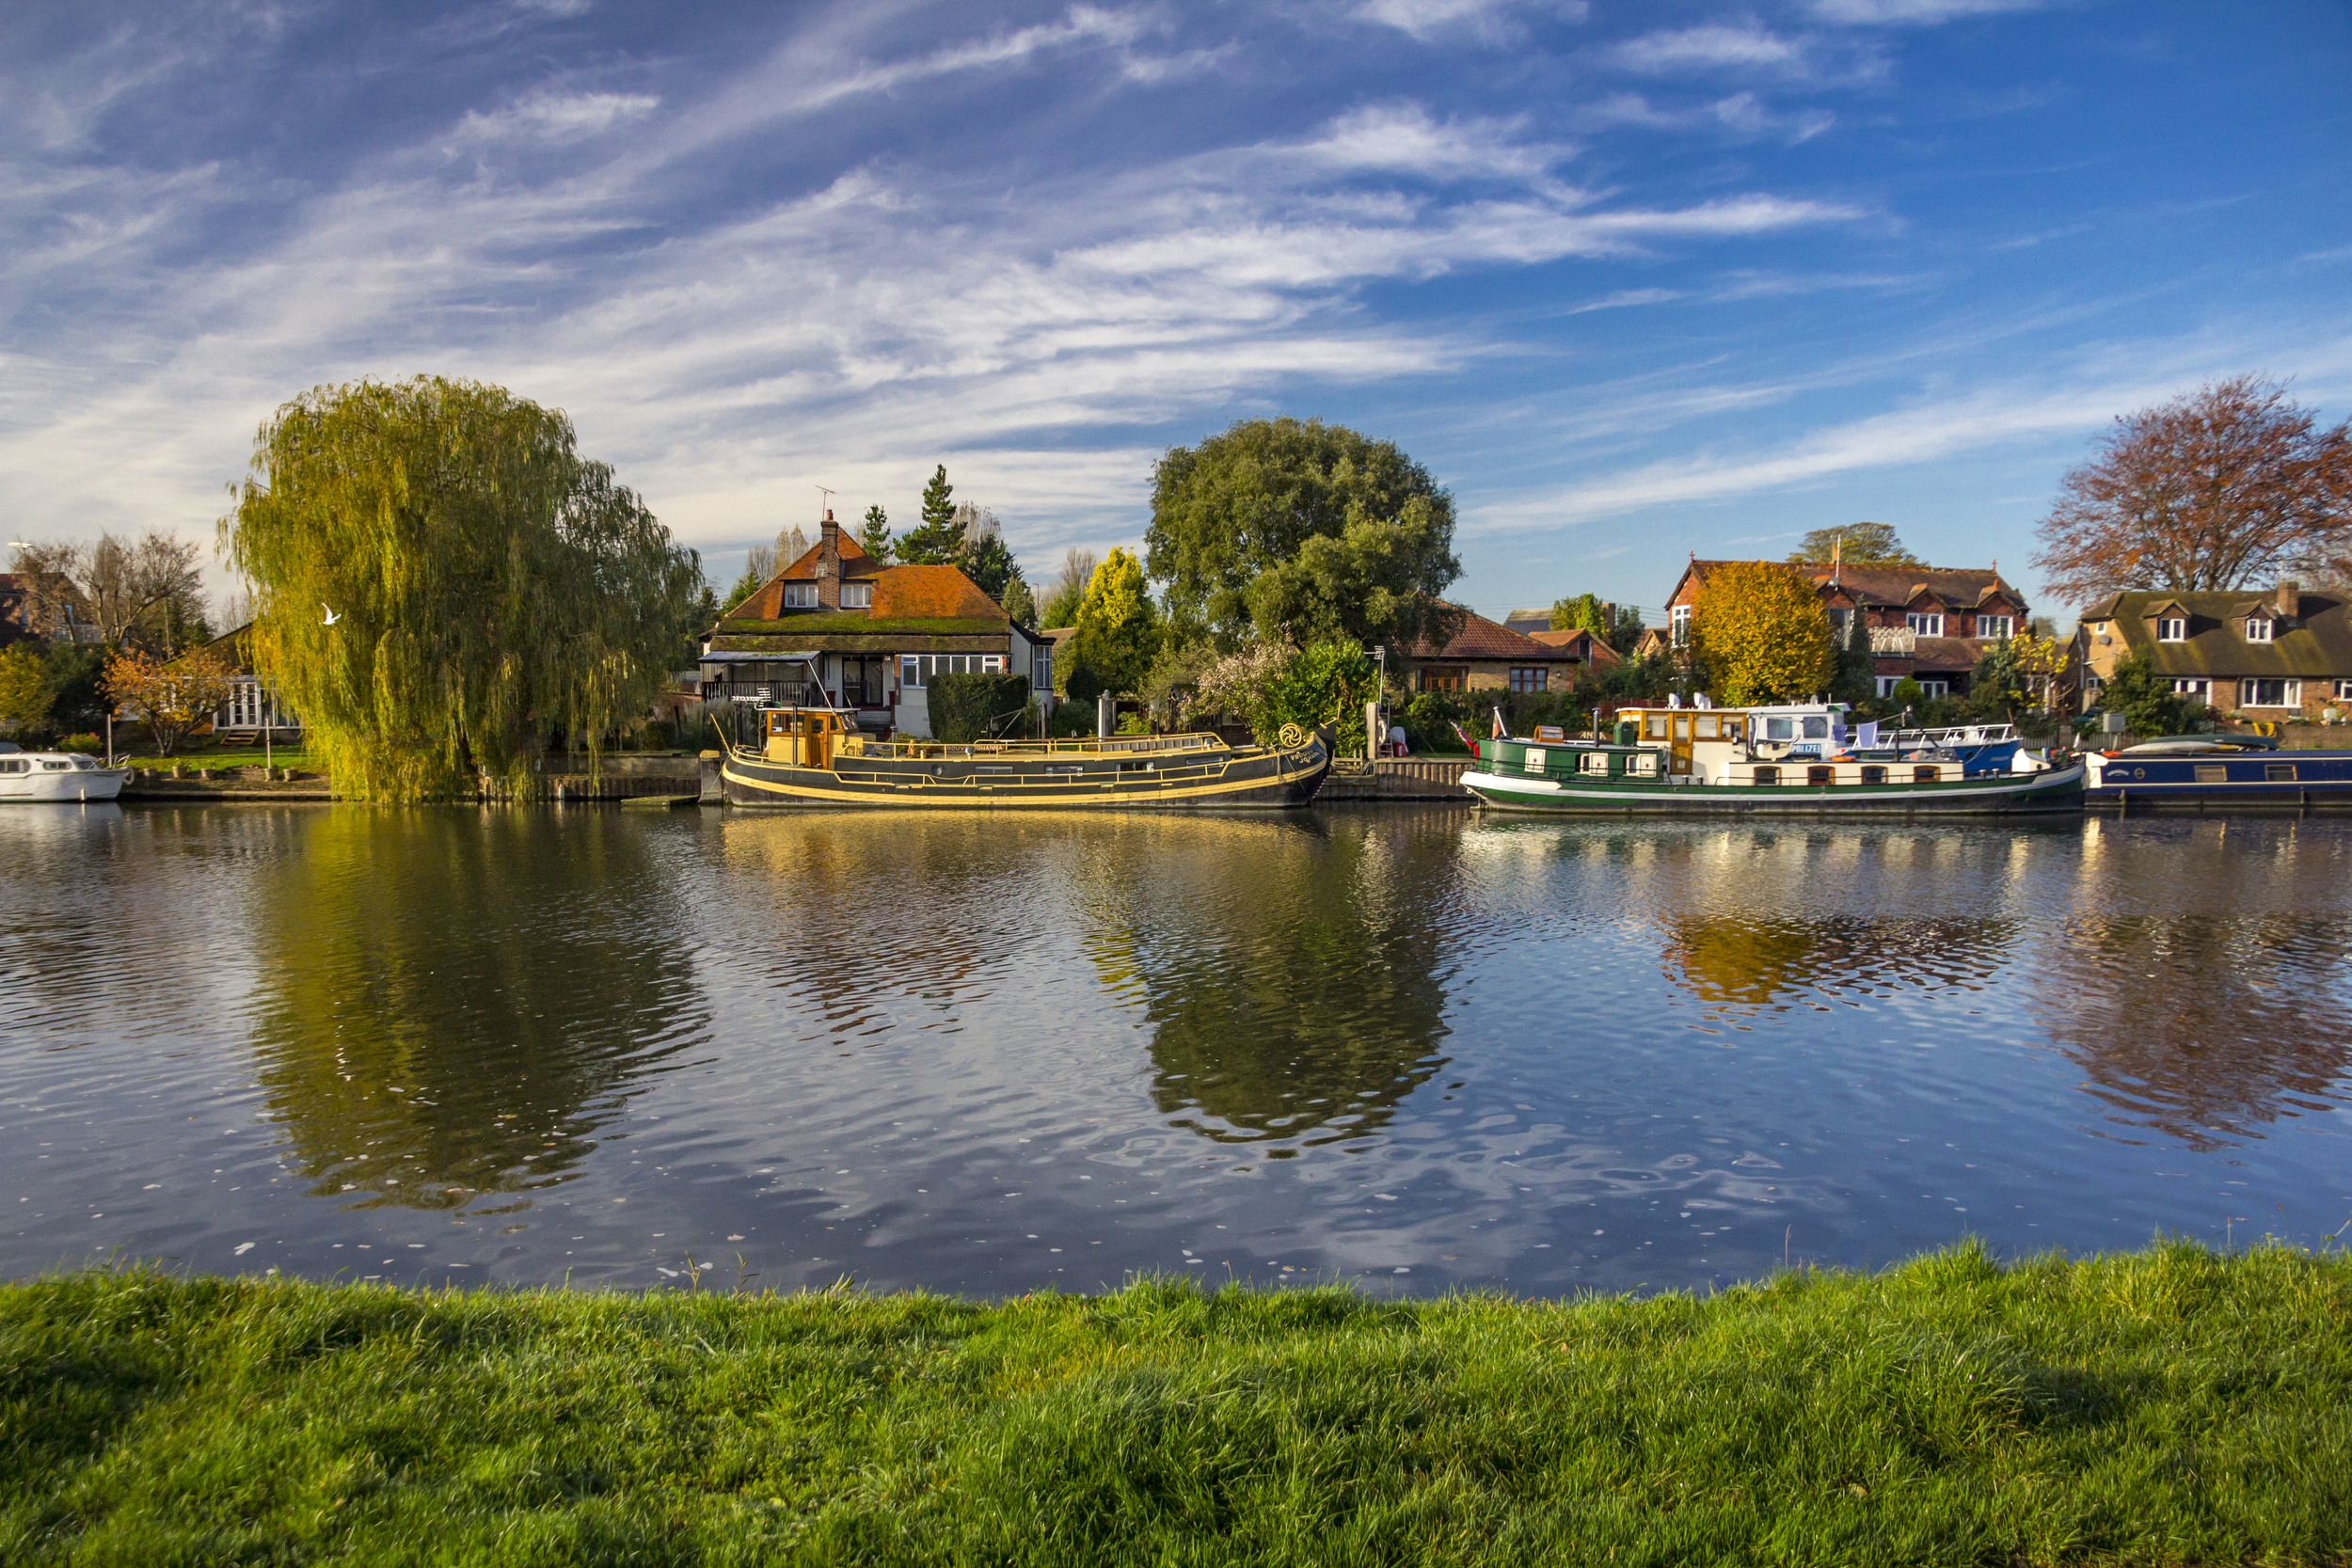 Staines_04.jpg